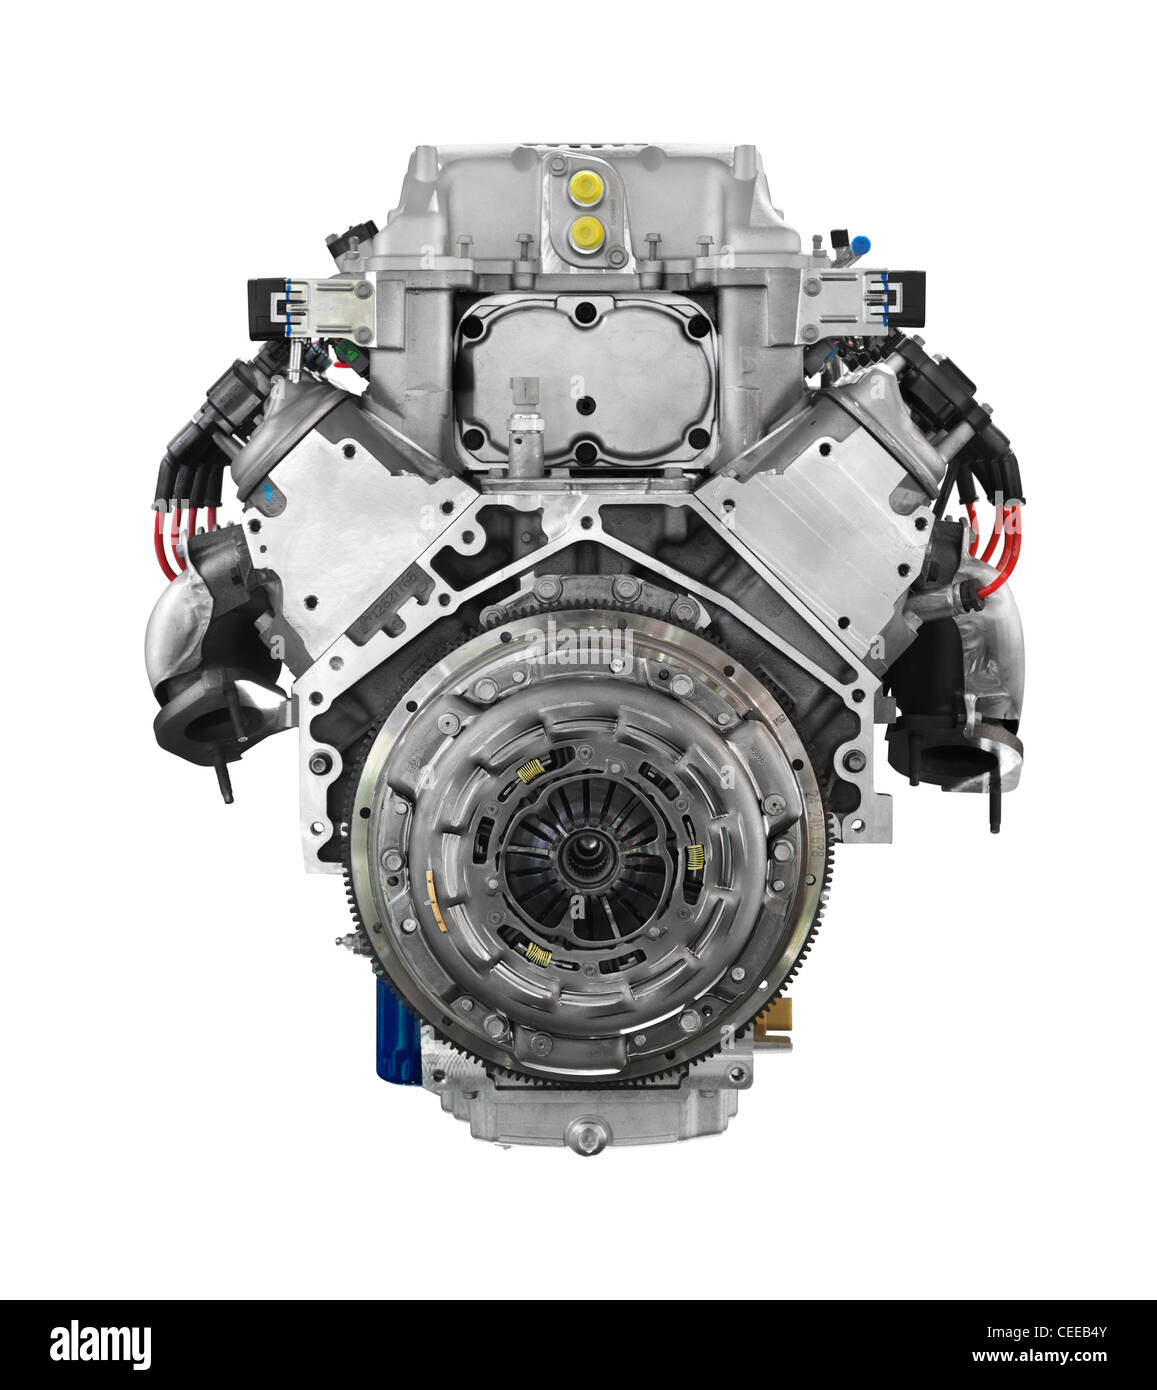 Cadillac 556HP 6.2L V8 car engine from the clutch side isolated on white background with clipping path - Stock Image